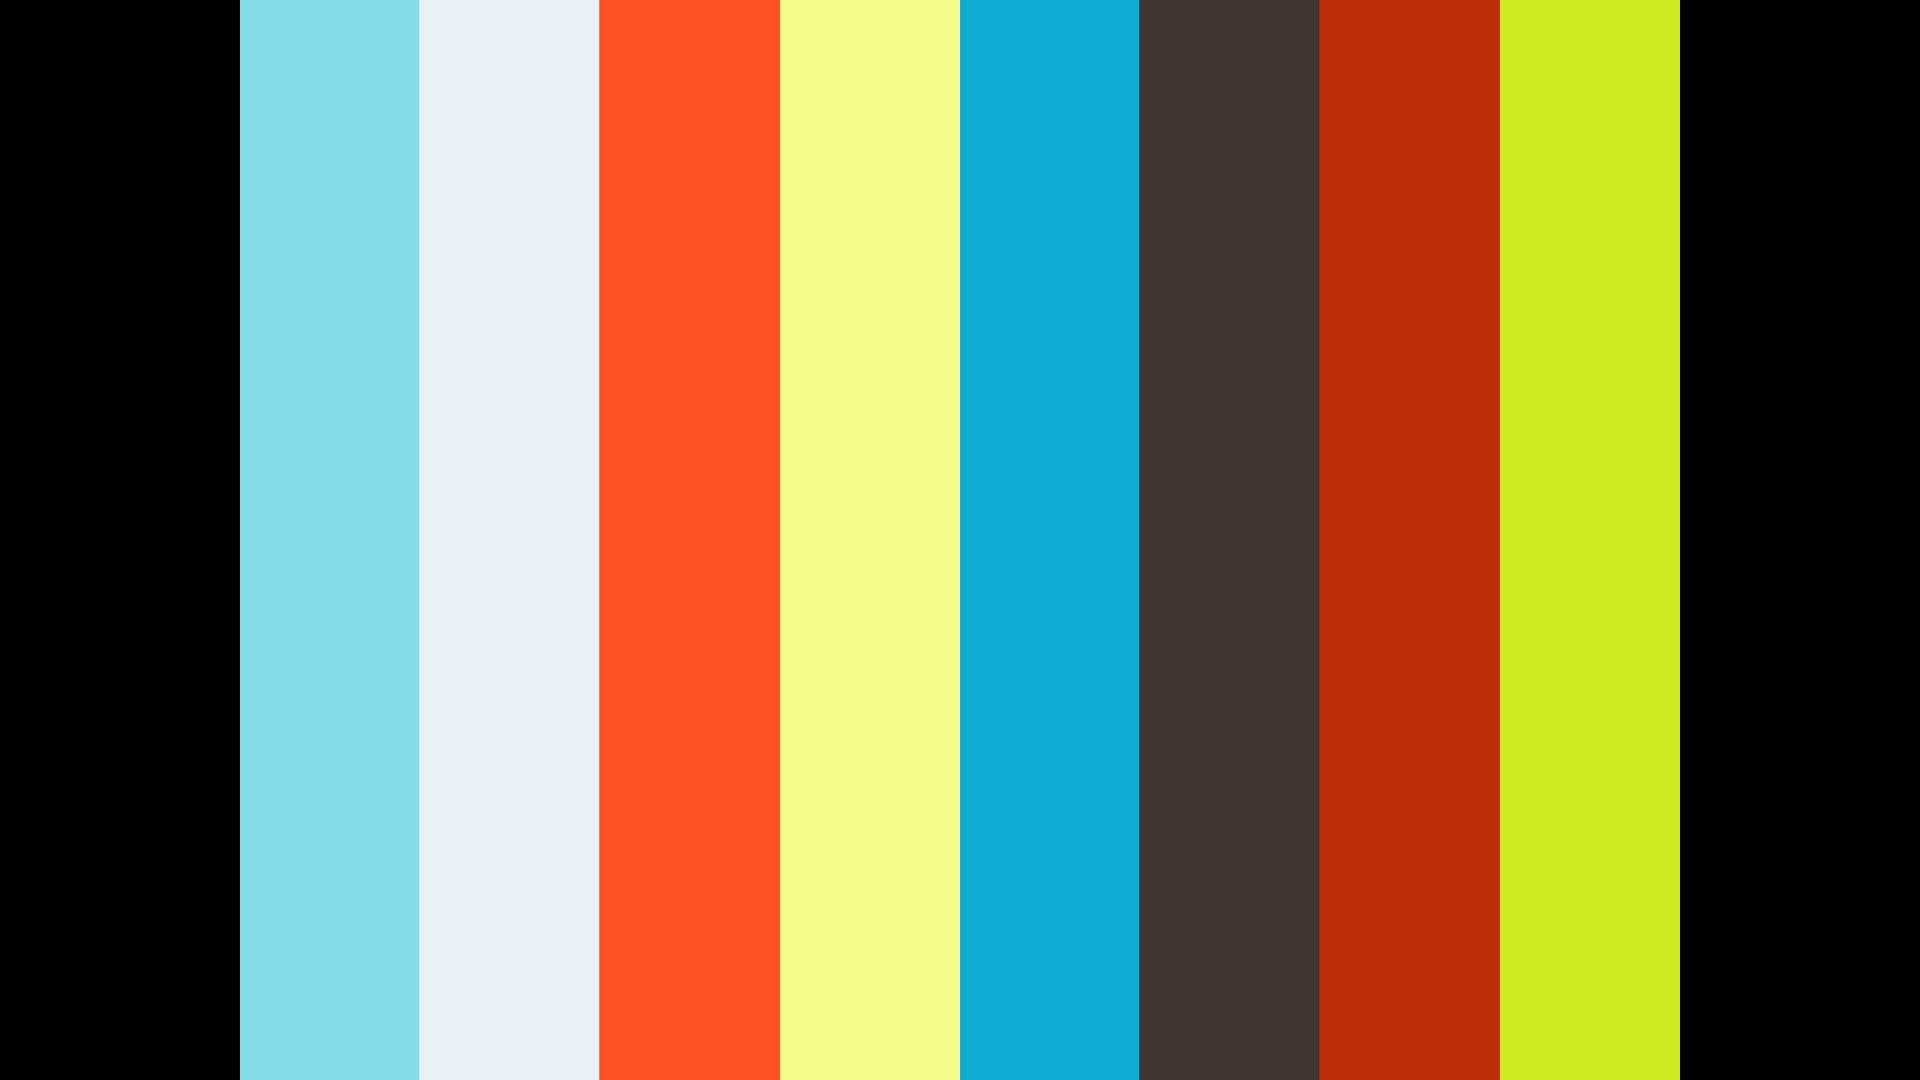 Joffrey West Los Angeles Intensive 2013 - Mercurial Mass, Choreography by John Pennington - Joffrey Ballet School